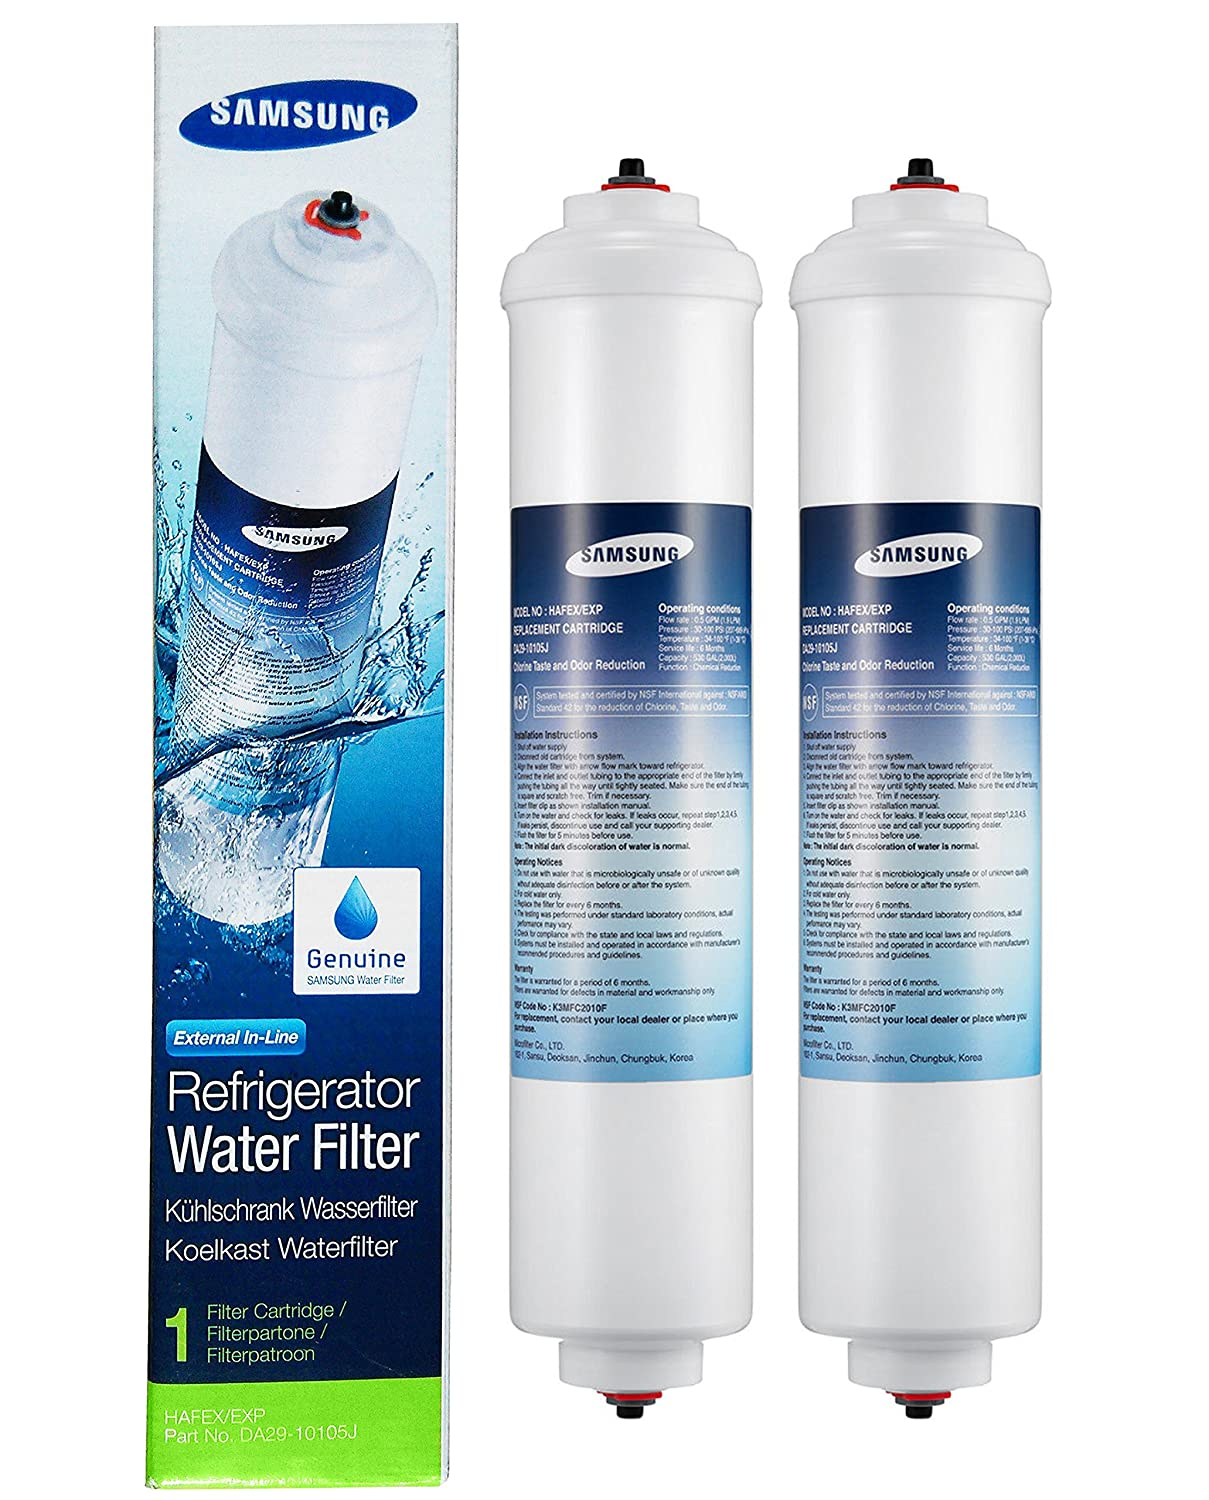 DA29-10105J Genuine SAMSUNG AQUA PURE Refrigerator Water Filter Cartridge 3 Pack